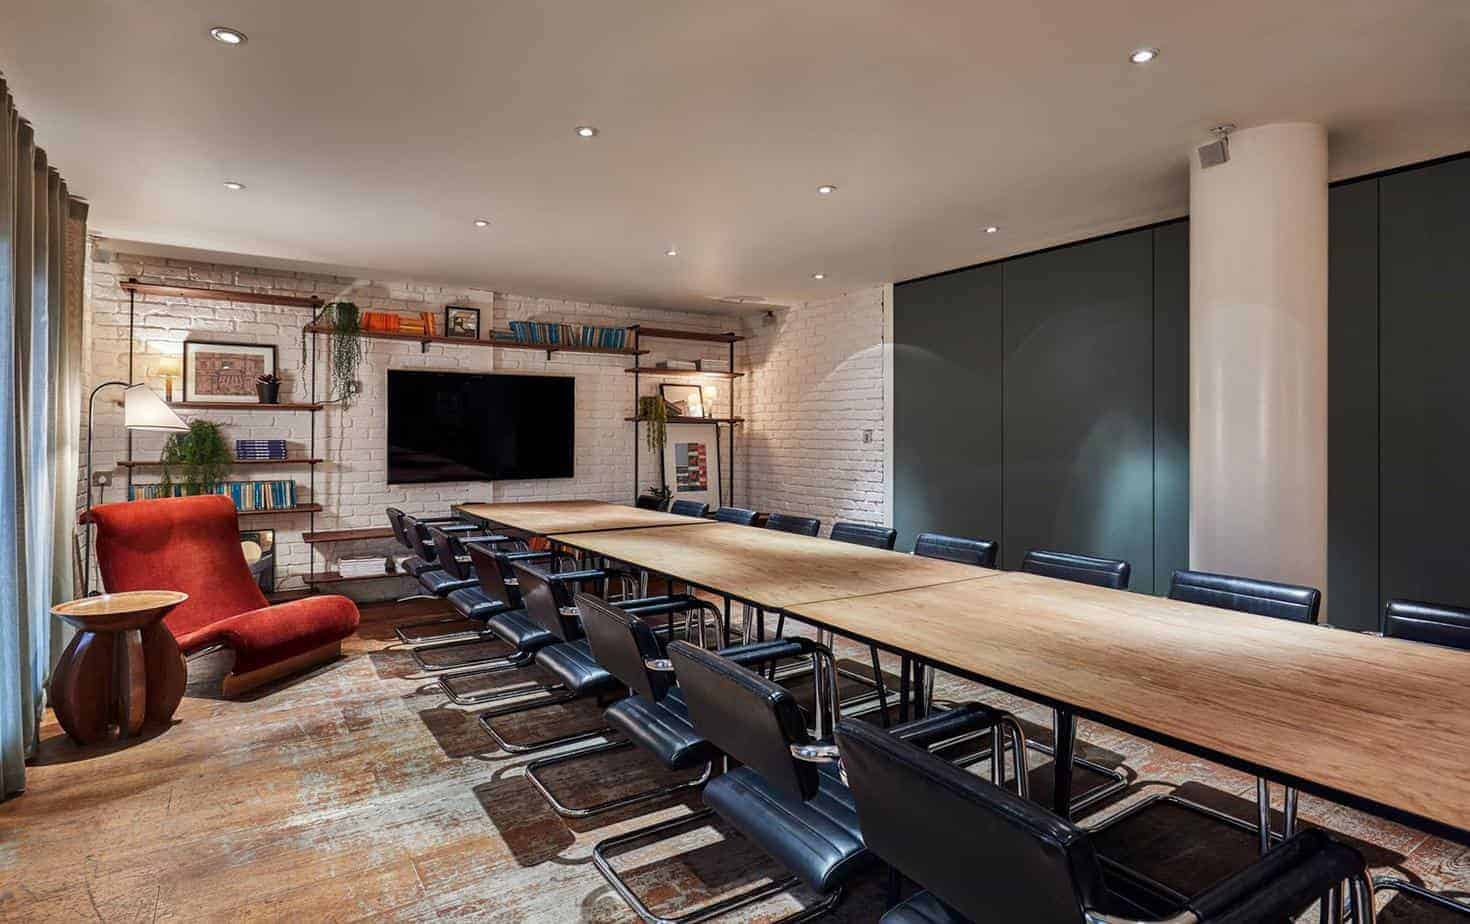 Funky meeting space with quirky decorations and brick walls